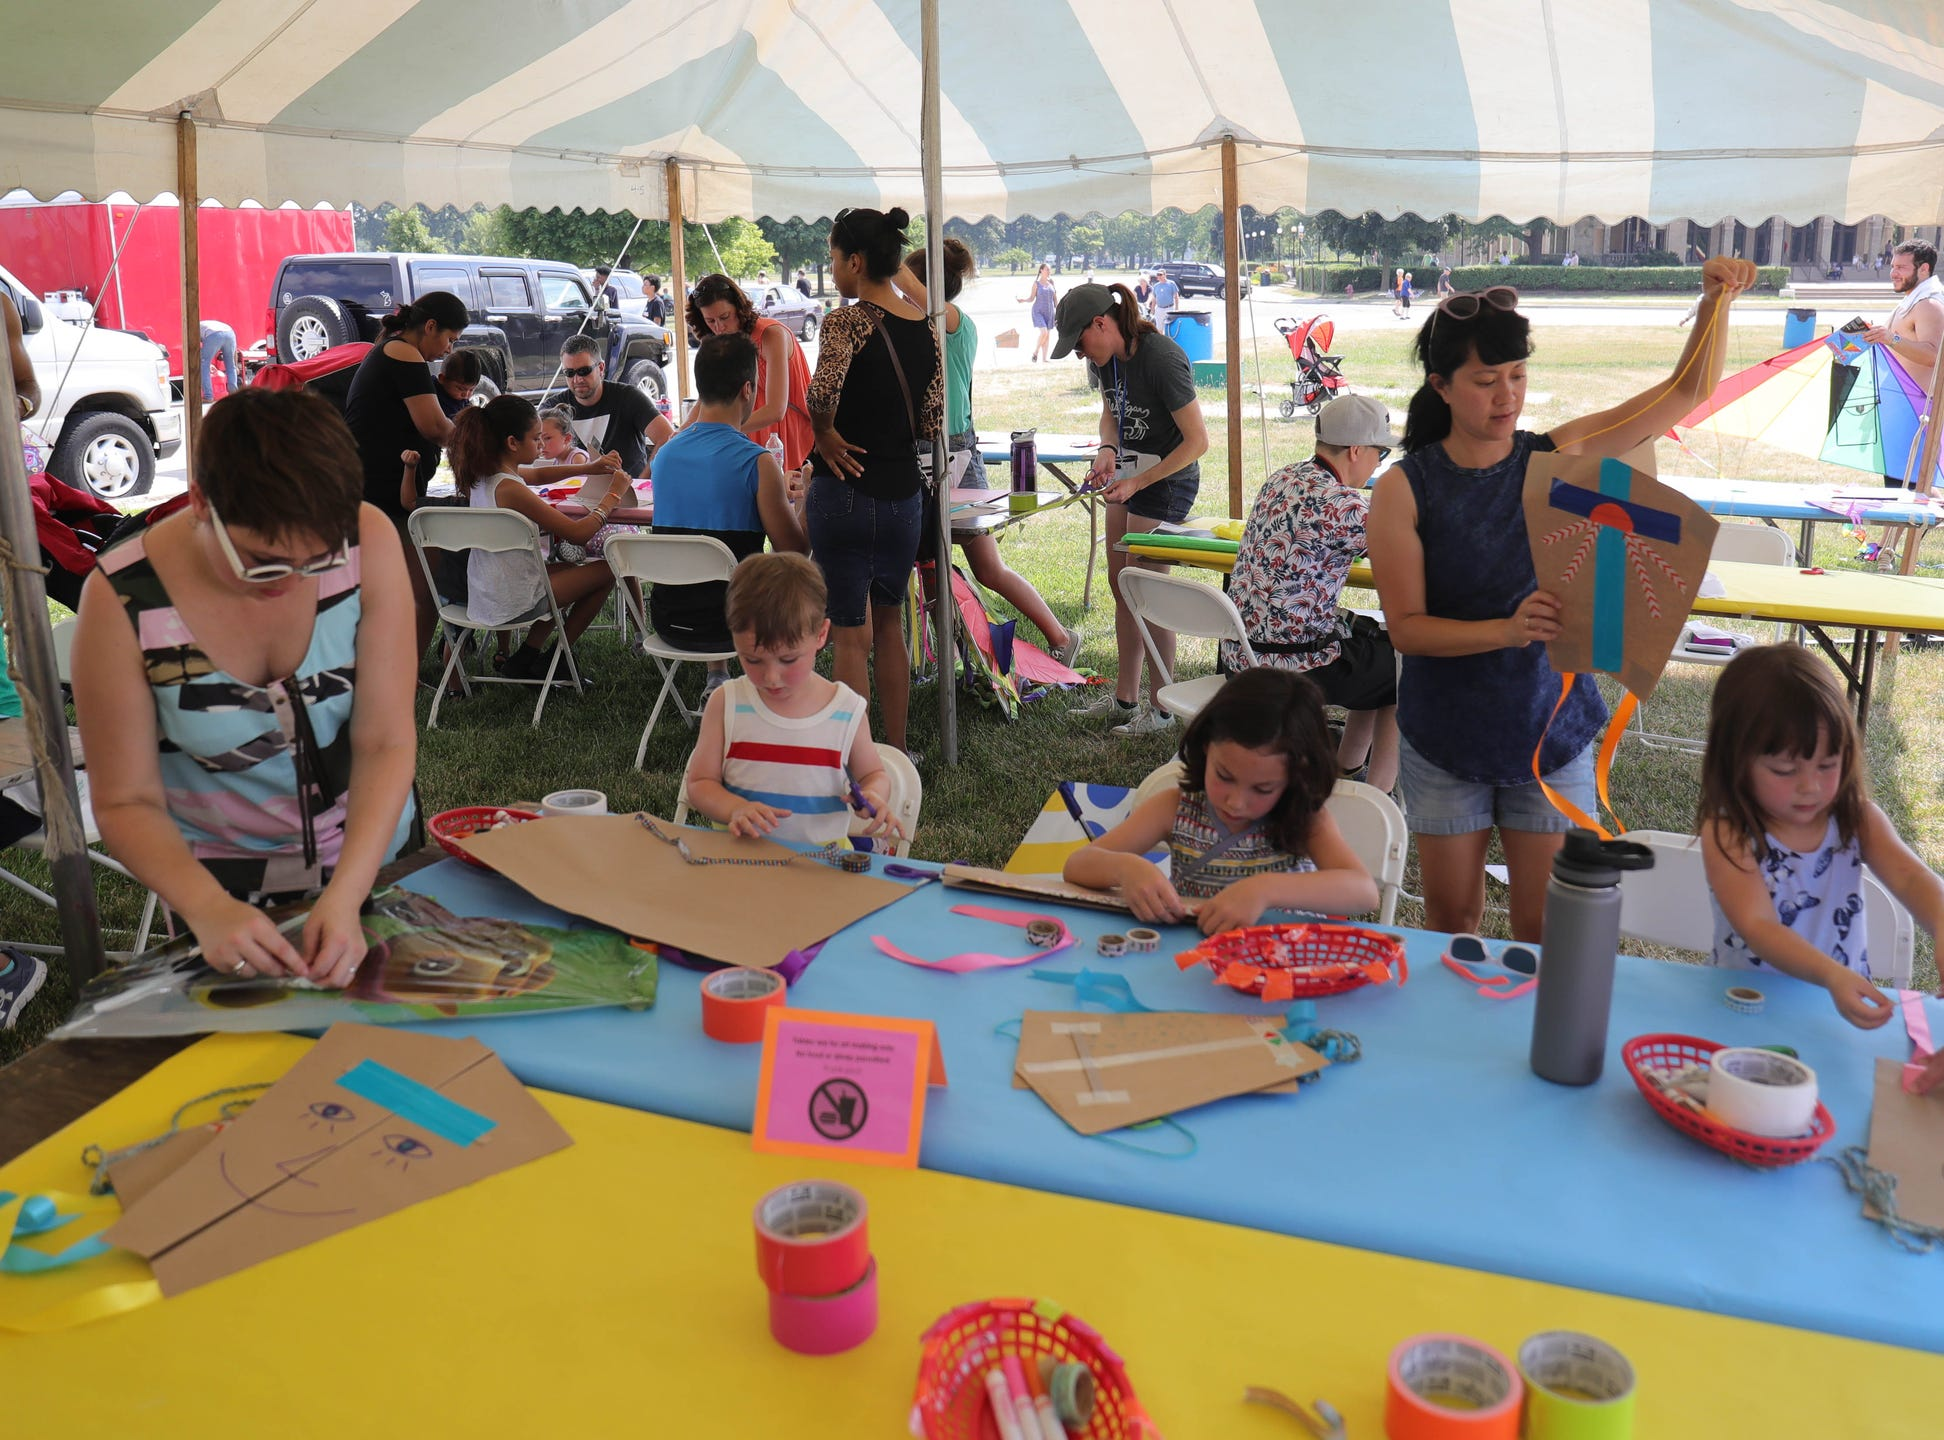 Kite enthusiasts design and assemble kites during Detroit Kite Festival on Belle Isle Sunday, July 15, 2018.